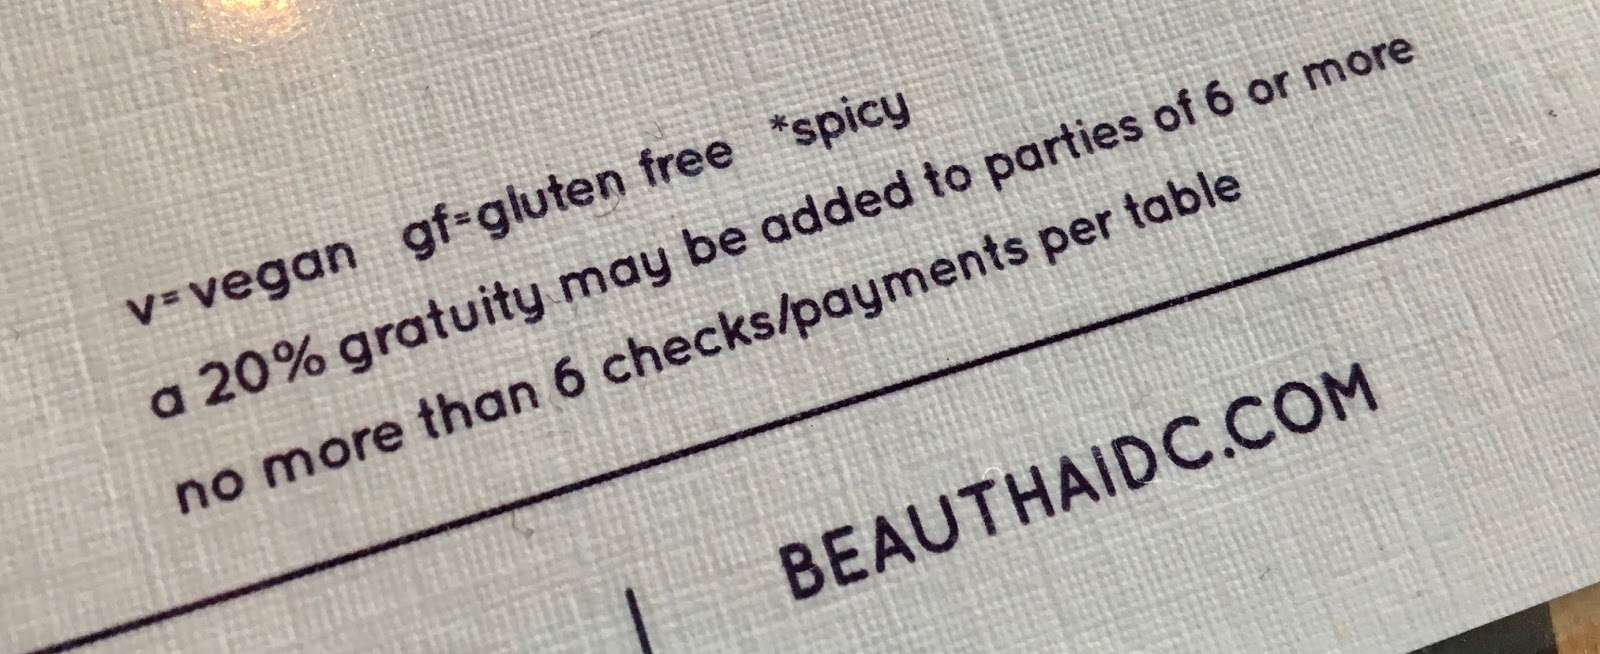 The Gluten & Dairy-Free Review Blog: Beau Thai Review